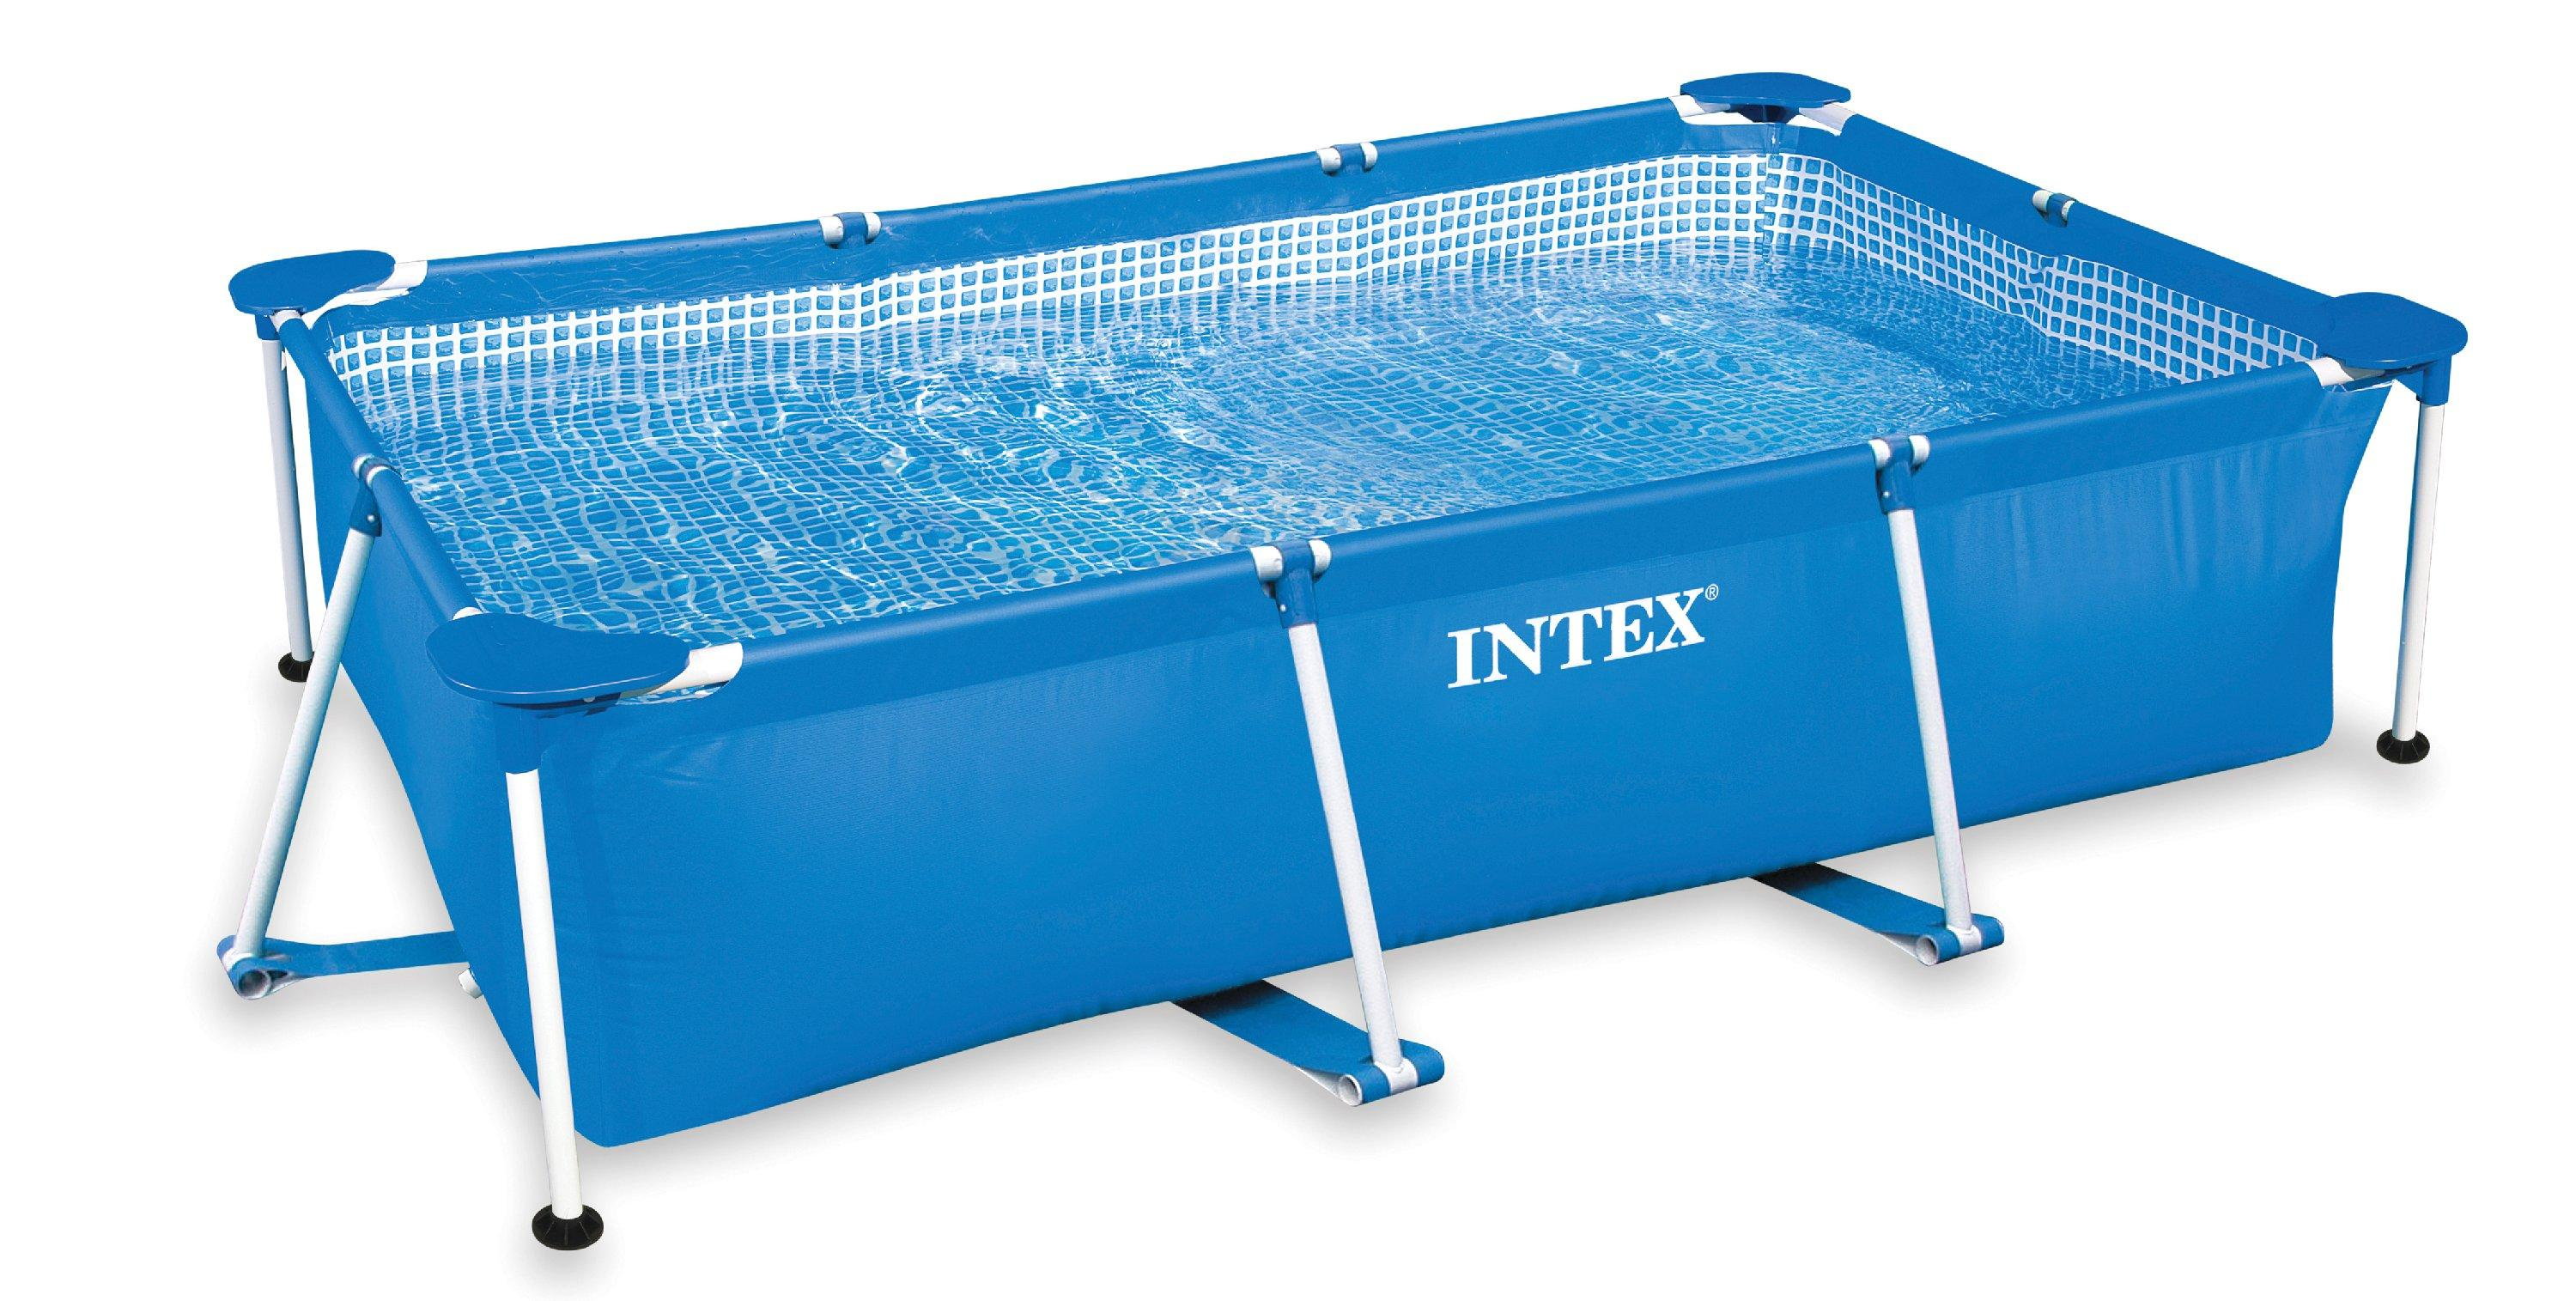 intex piscina frame rettangolare 300x200x75 cm amazon